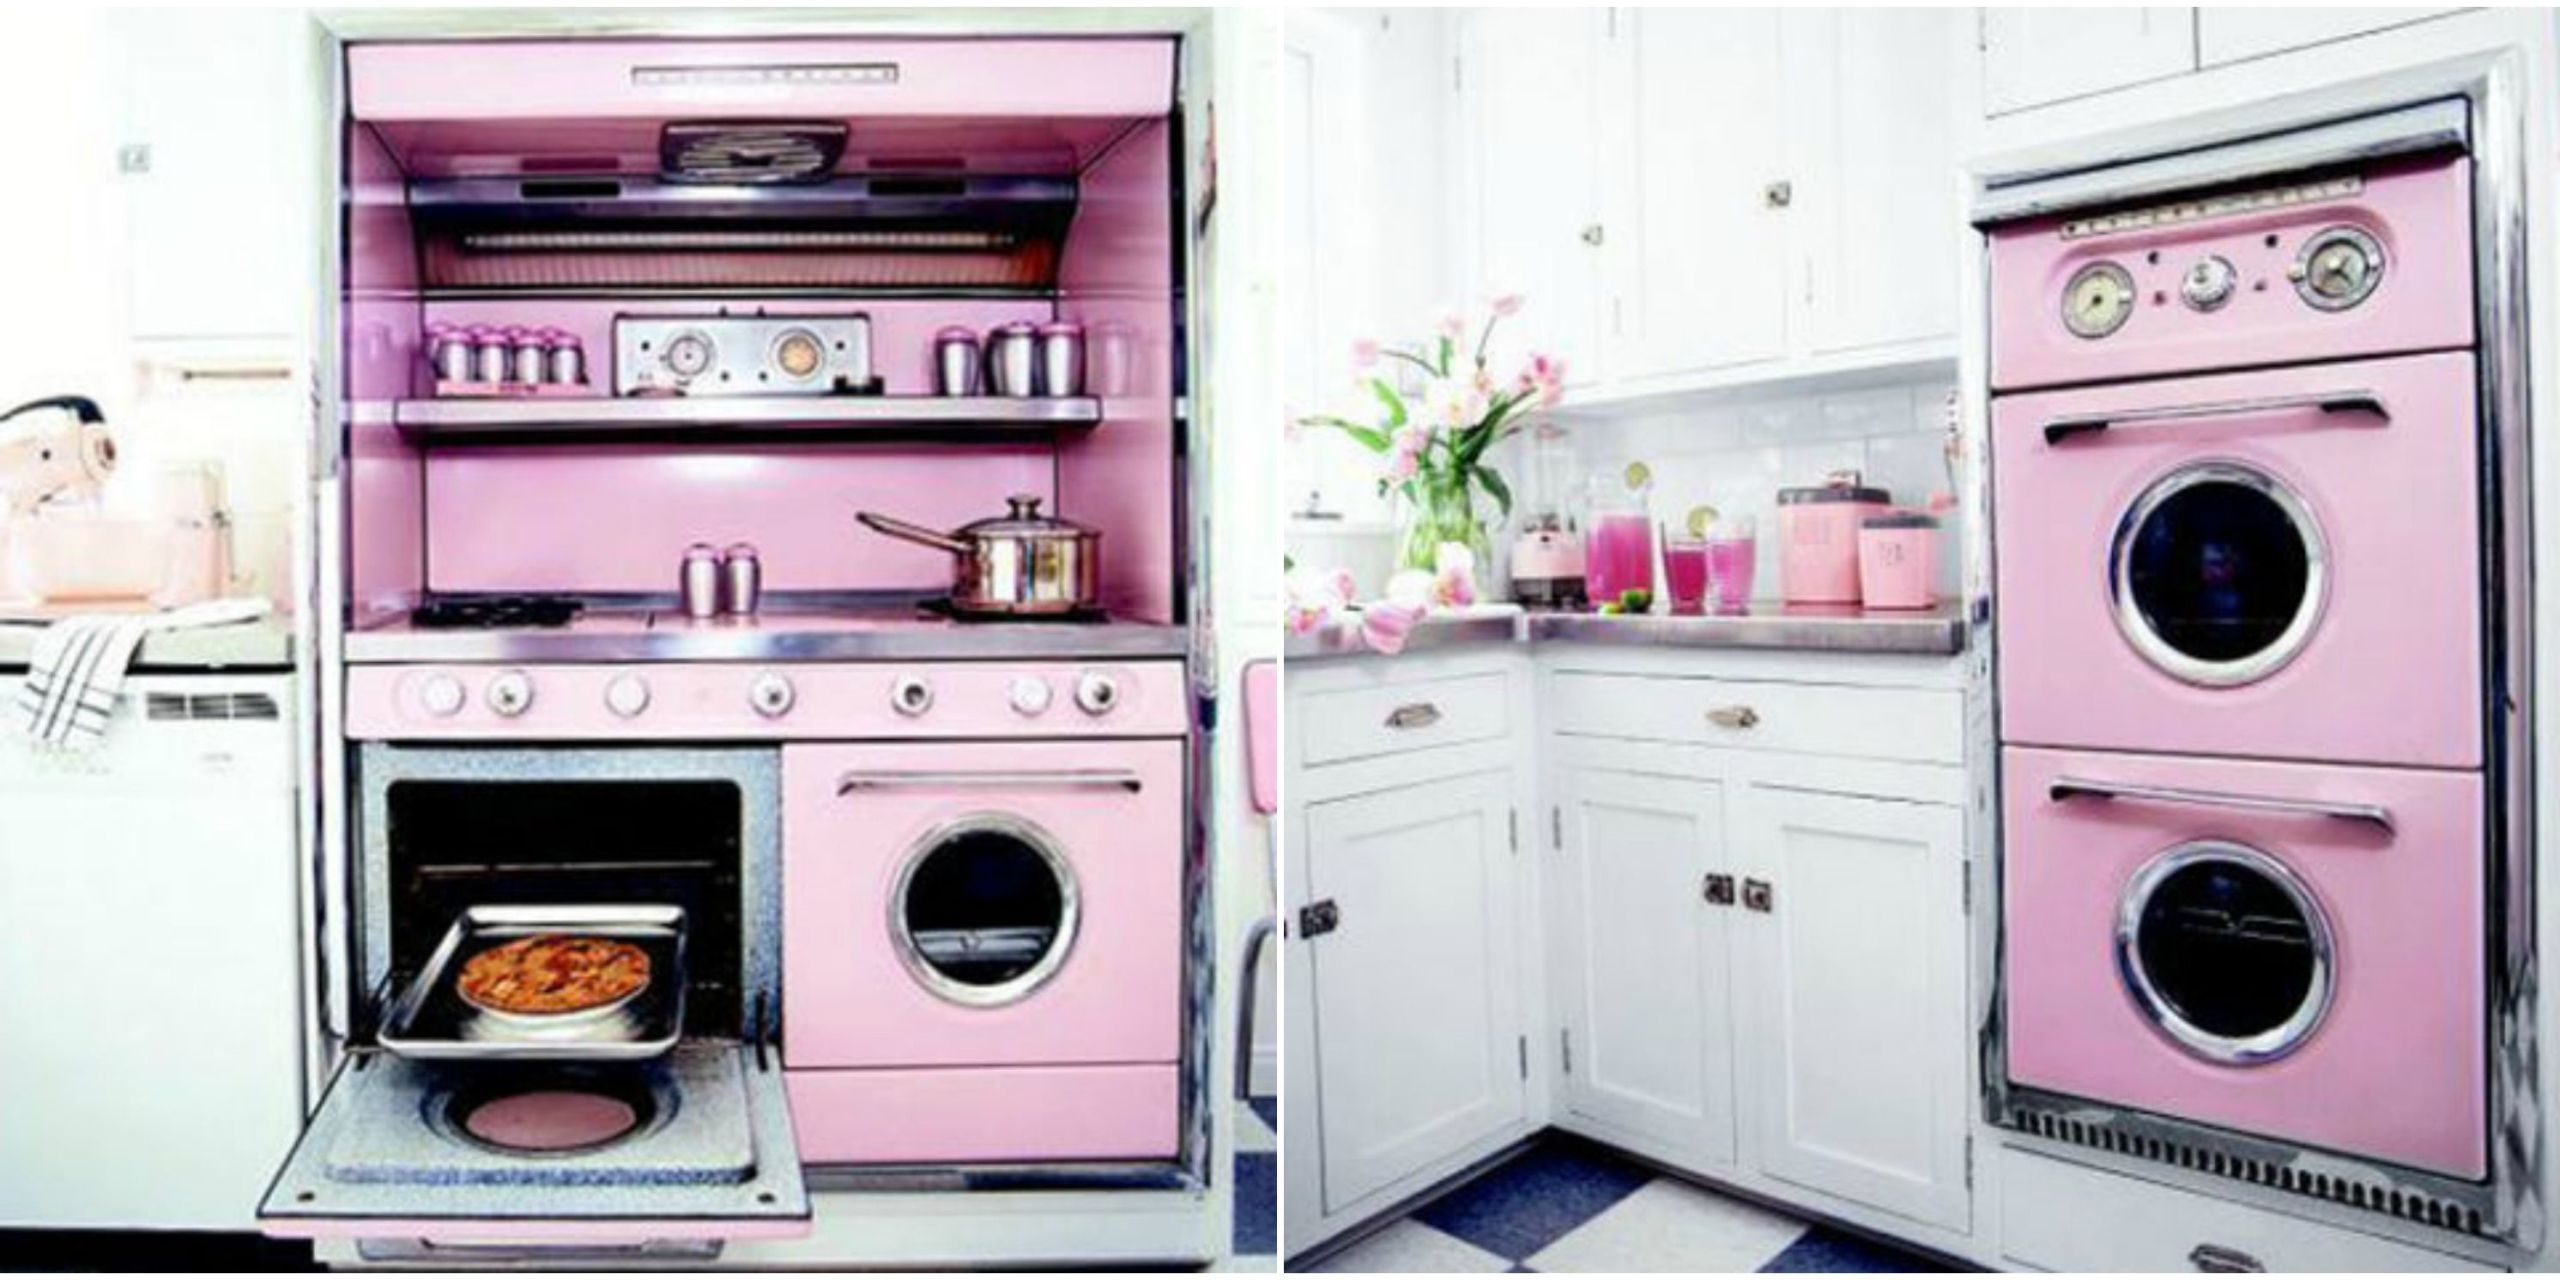 Fortune Smiles On A Los Angeles Couple As They Successfully Accumulate  Hard To Find Vintage Appliances For Their Rose Hued Retro Kitchen.